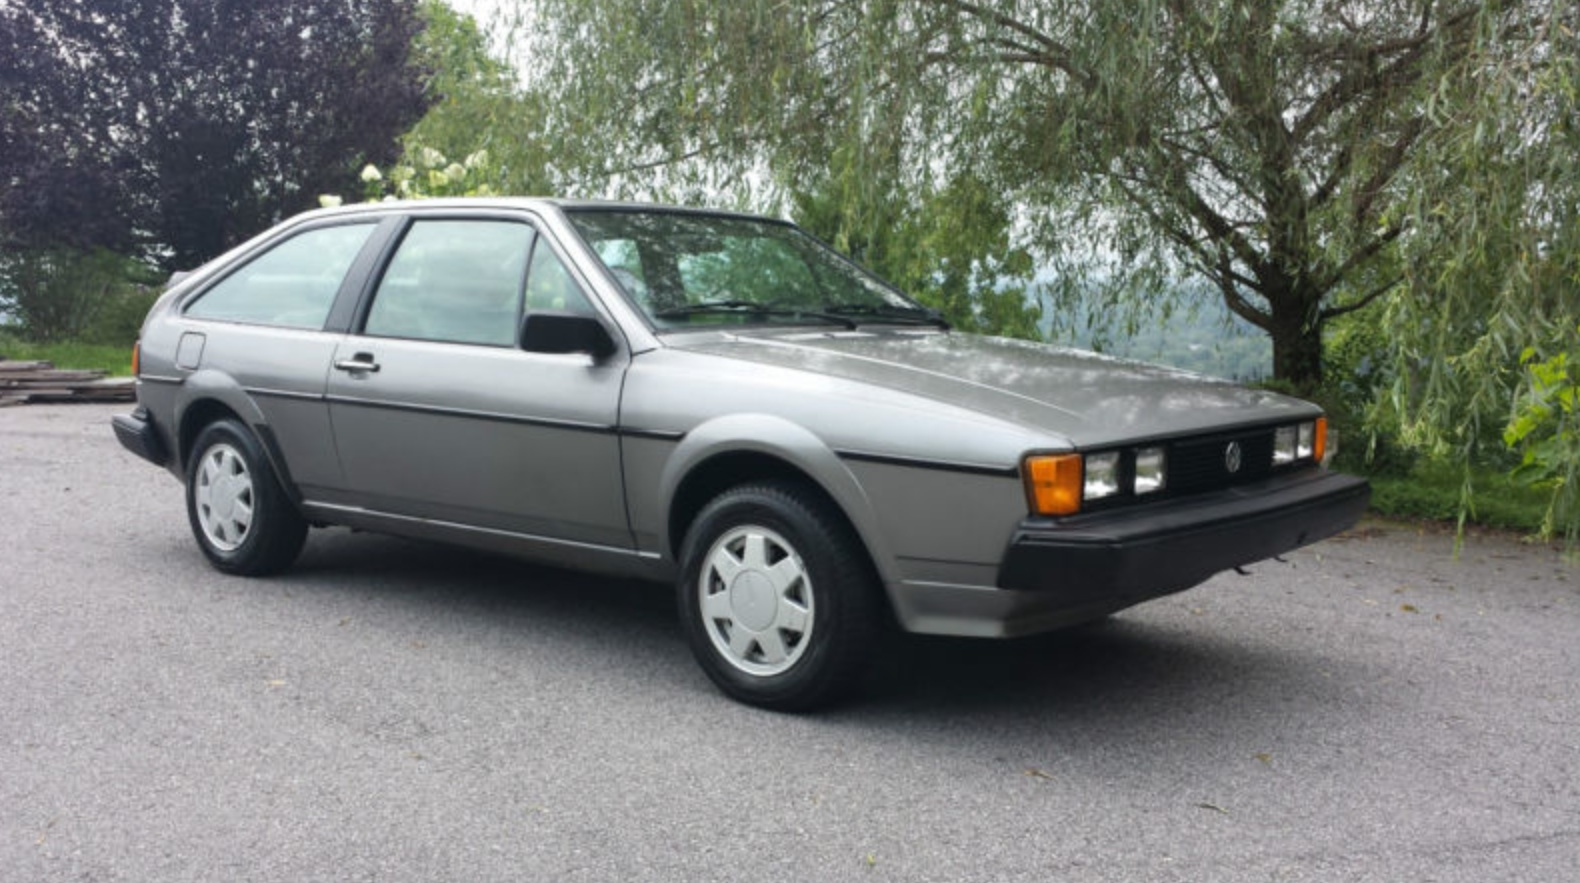 2013 Nissan Altima For Sale >> 1986 Volkswagen Scirocco with 59,000 miles – German Cars ...